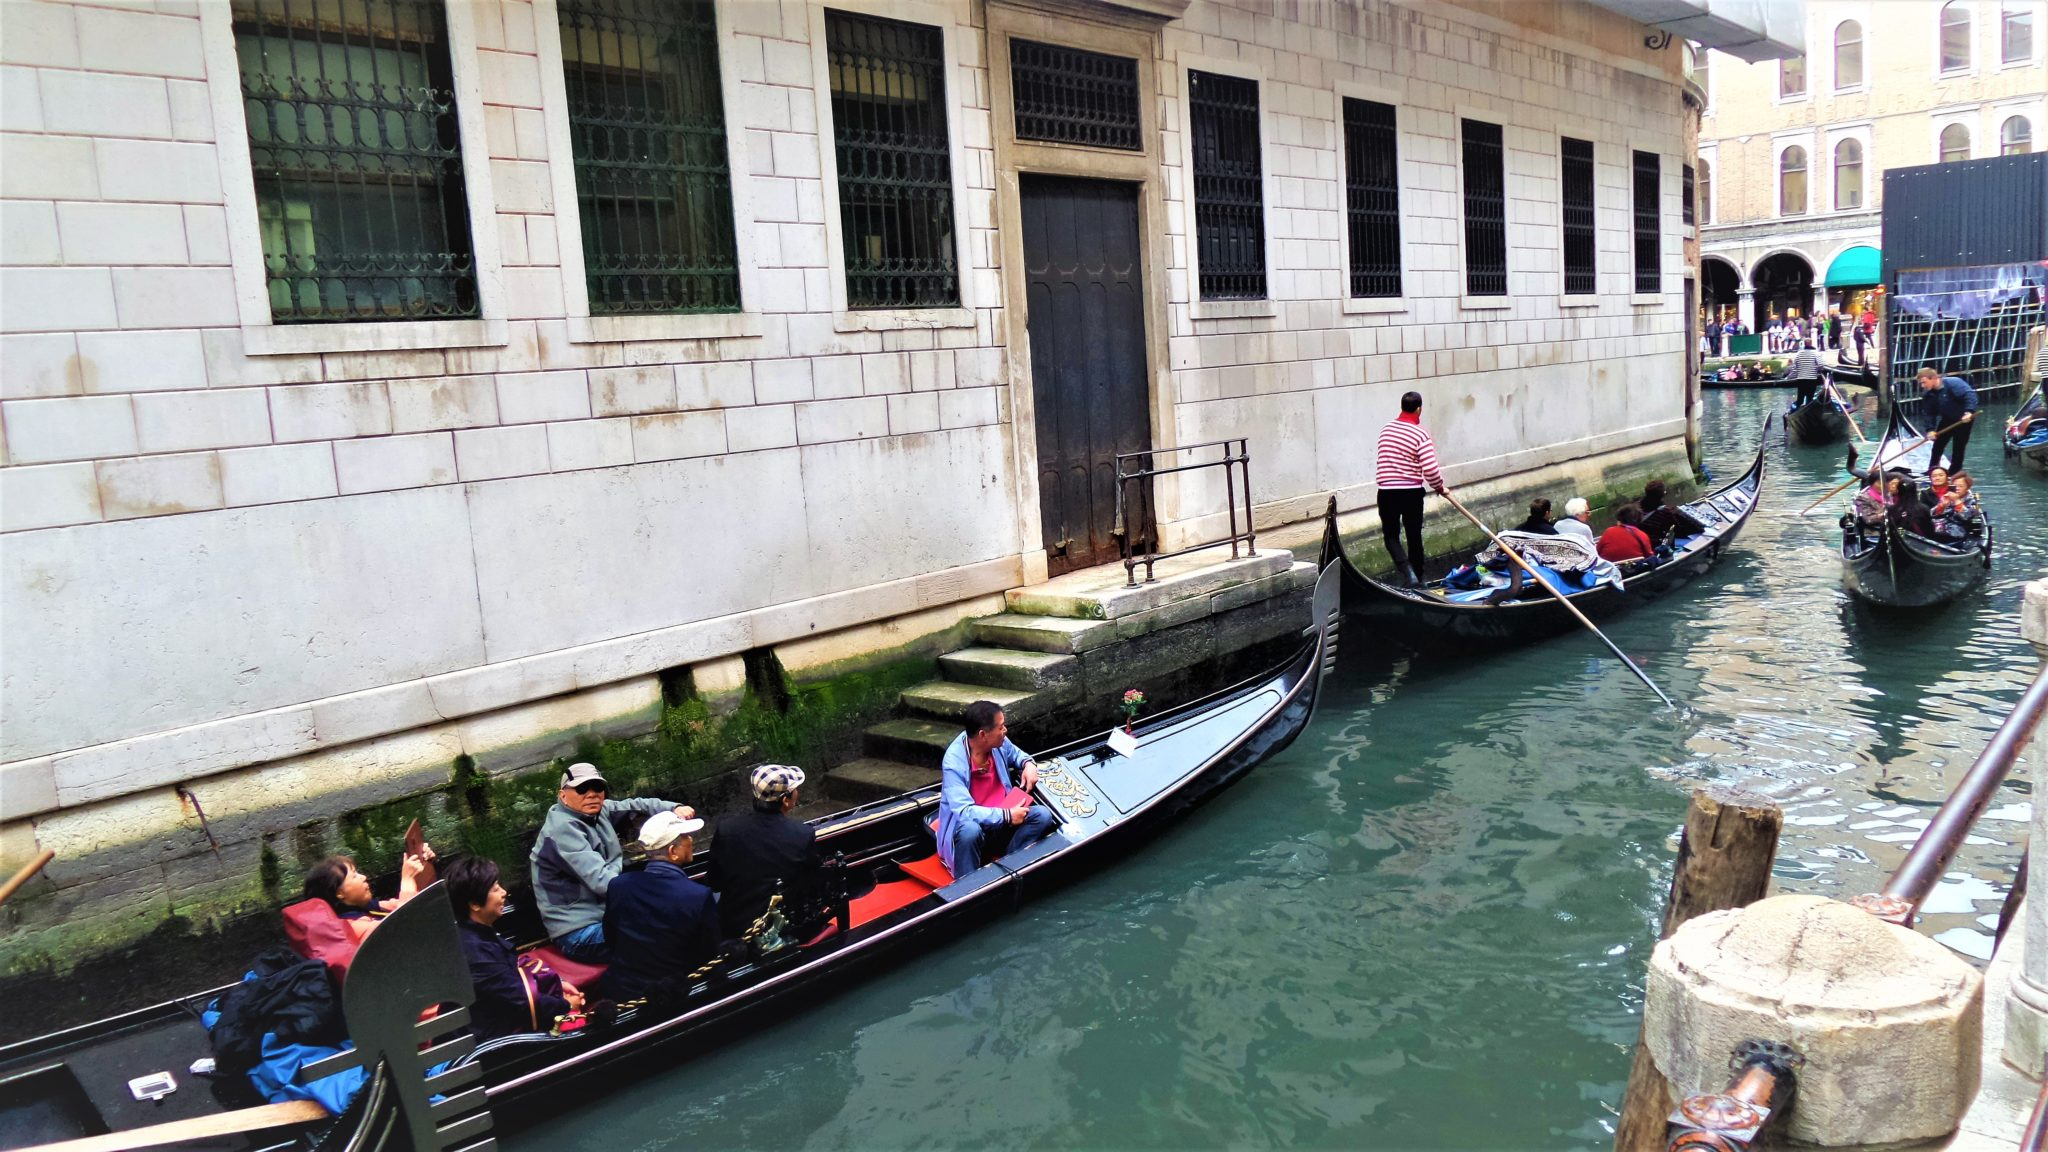 Gondola traffic in Venice, Italy